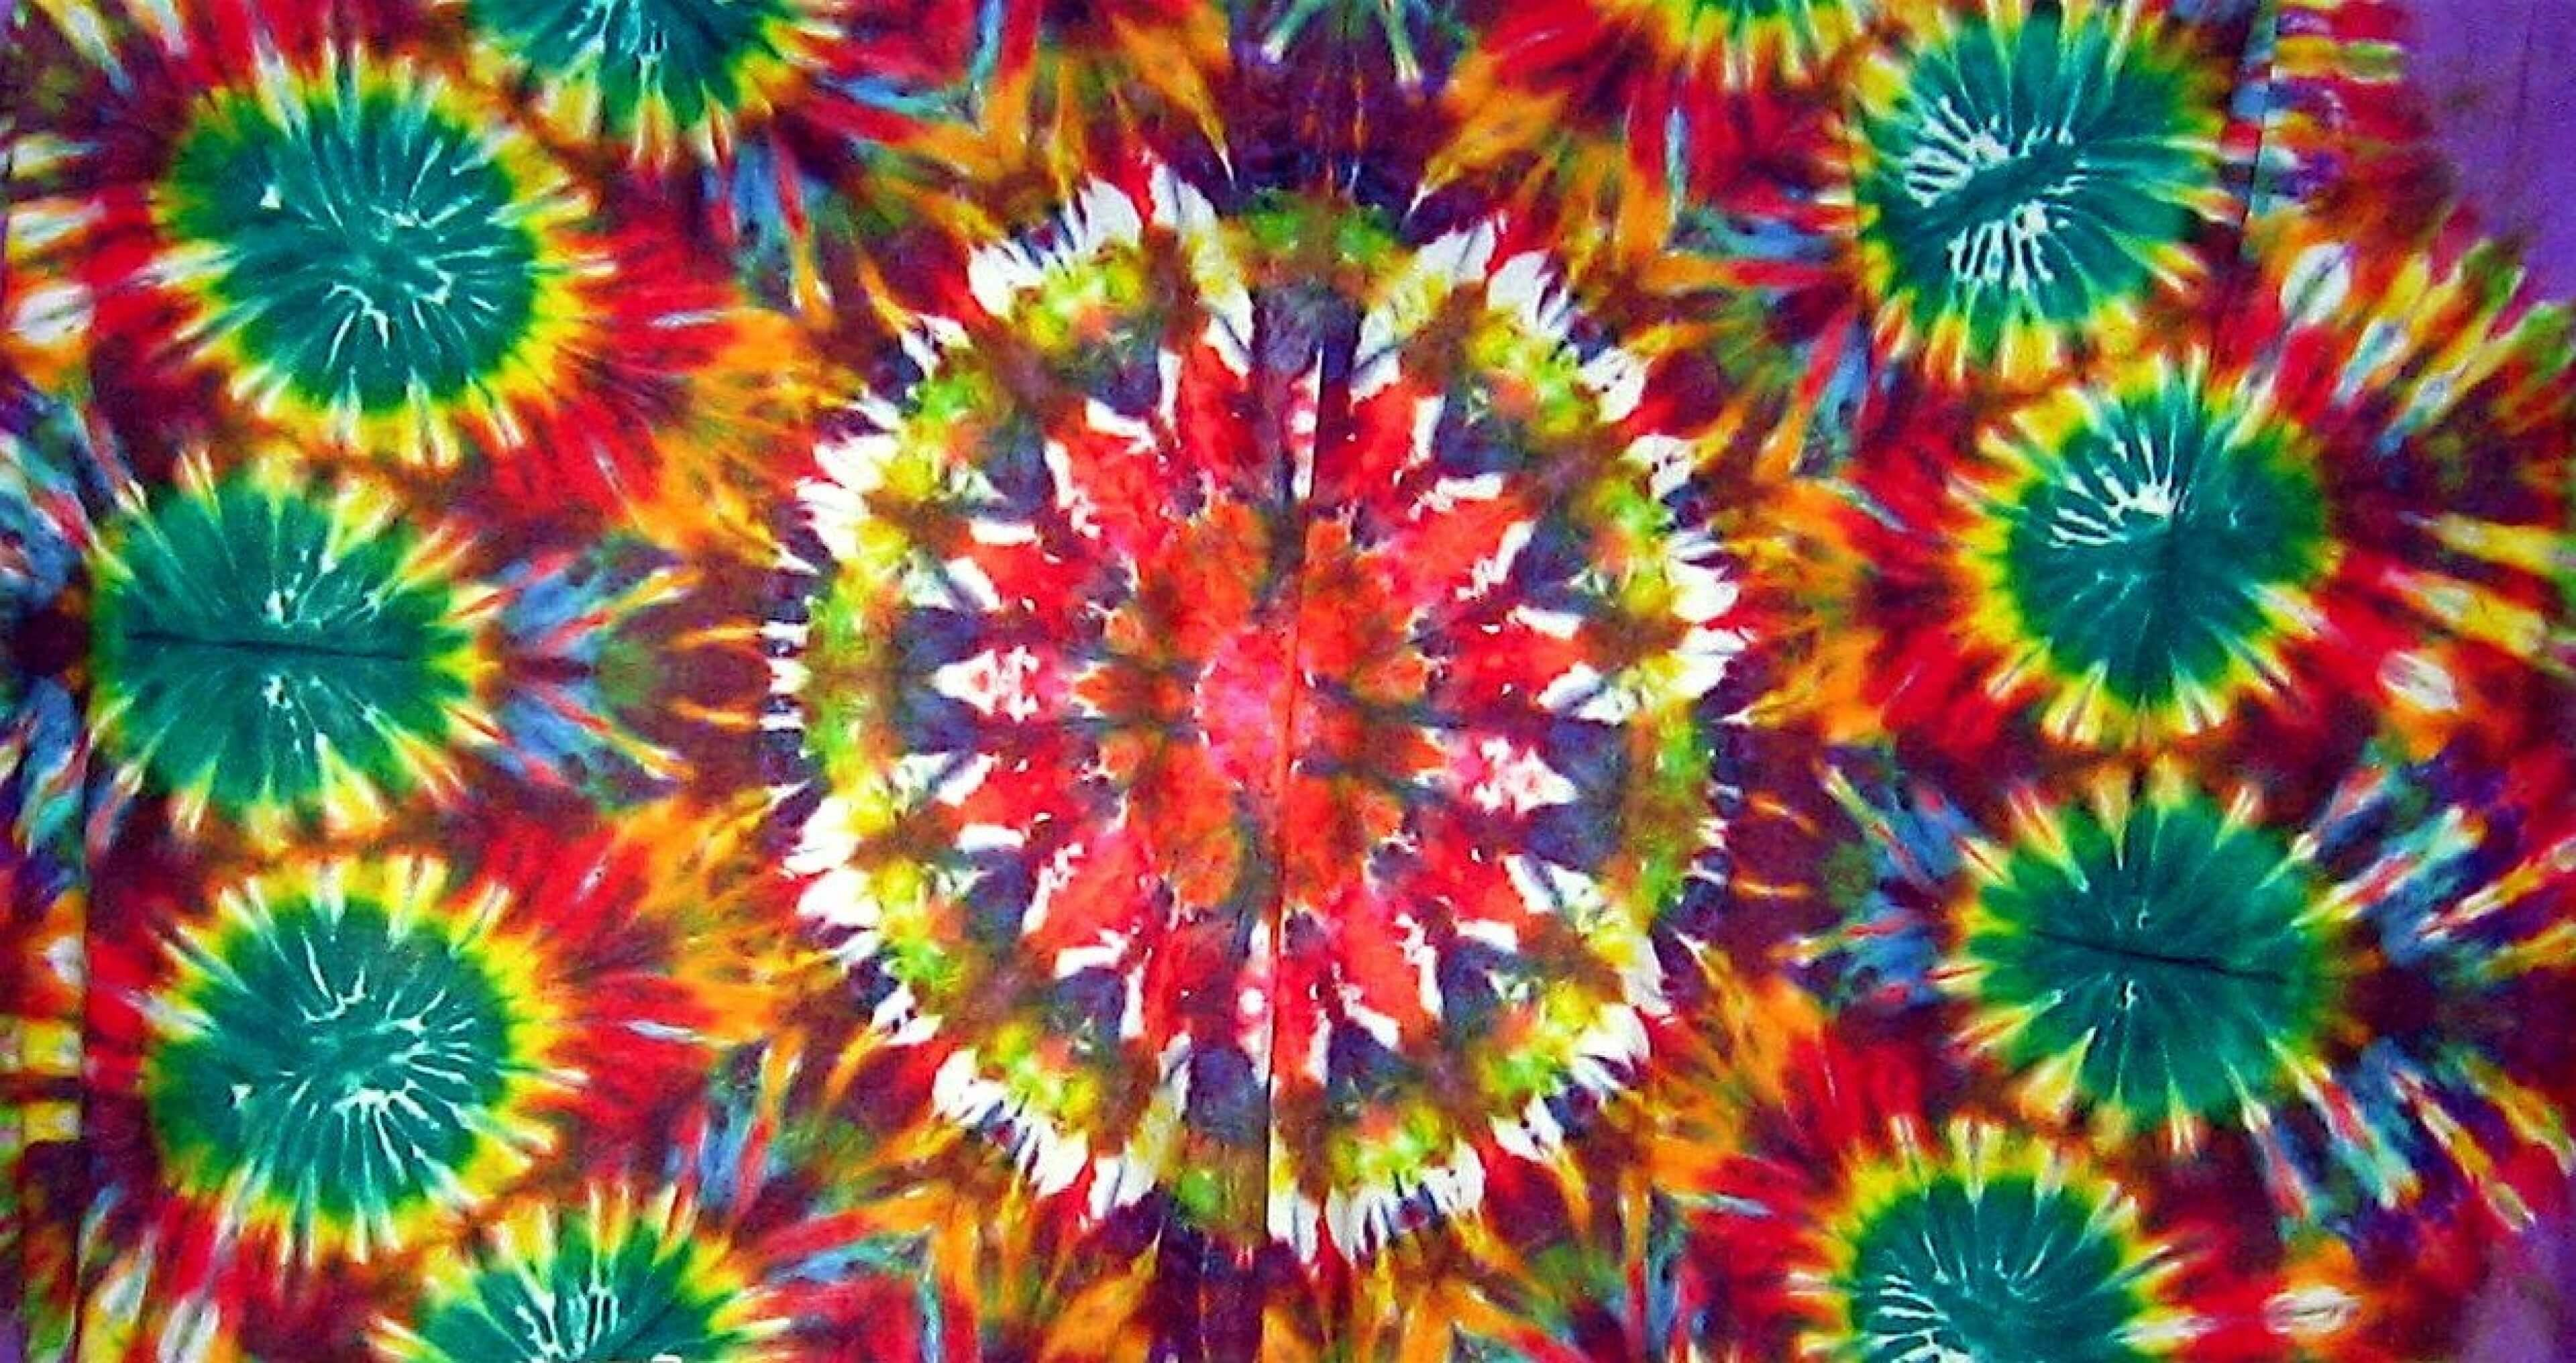 Free Tie Dye Wallpaper for iPhone 4K HD Tie dye